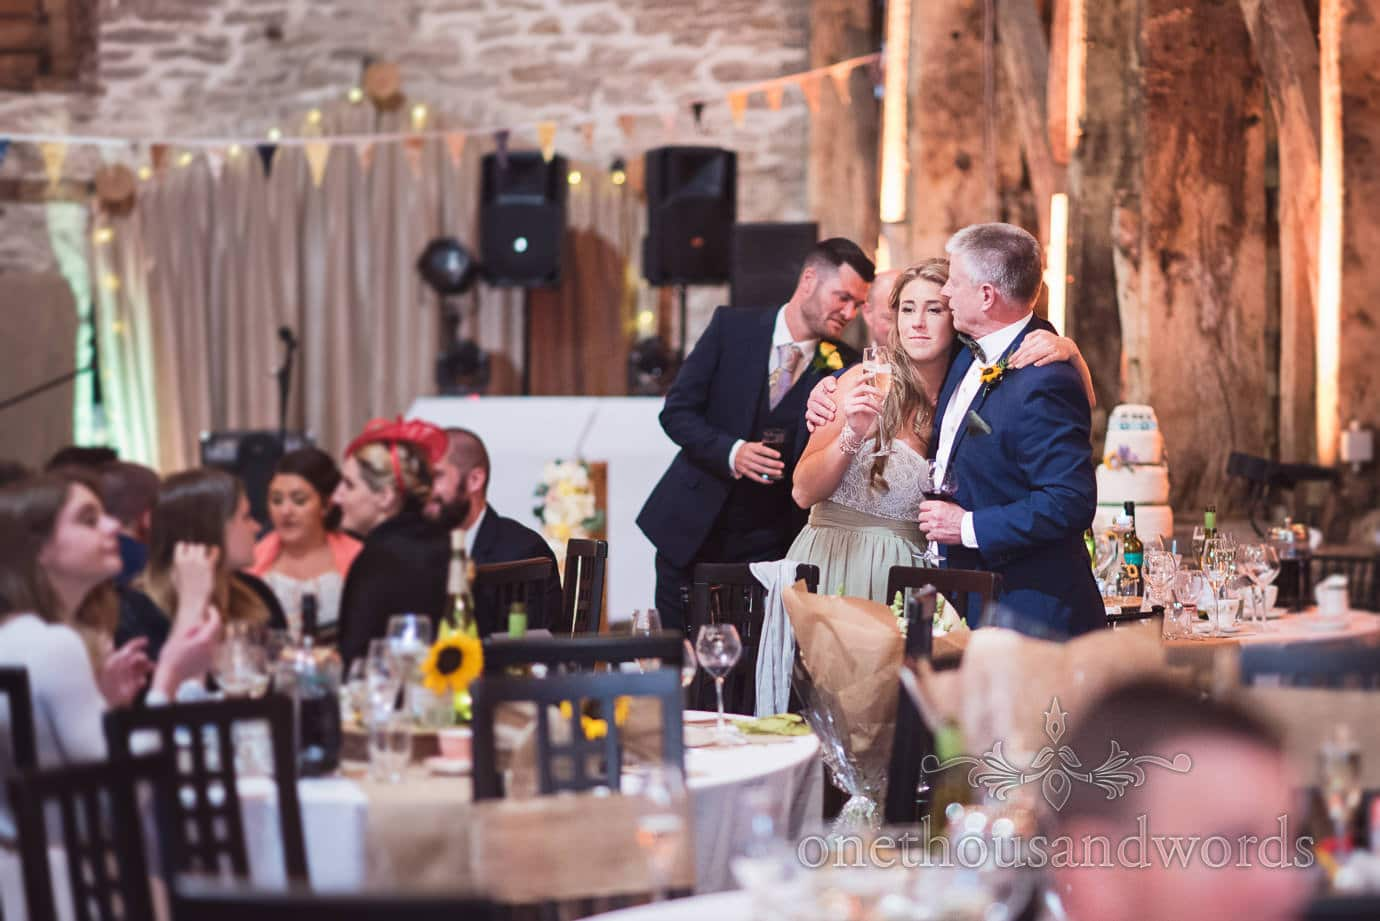 Father of the bride and bridesmaid embrace during wedding reception at rustic barn